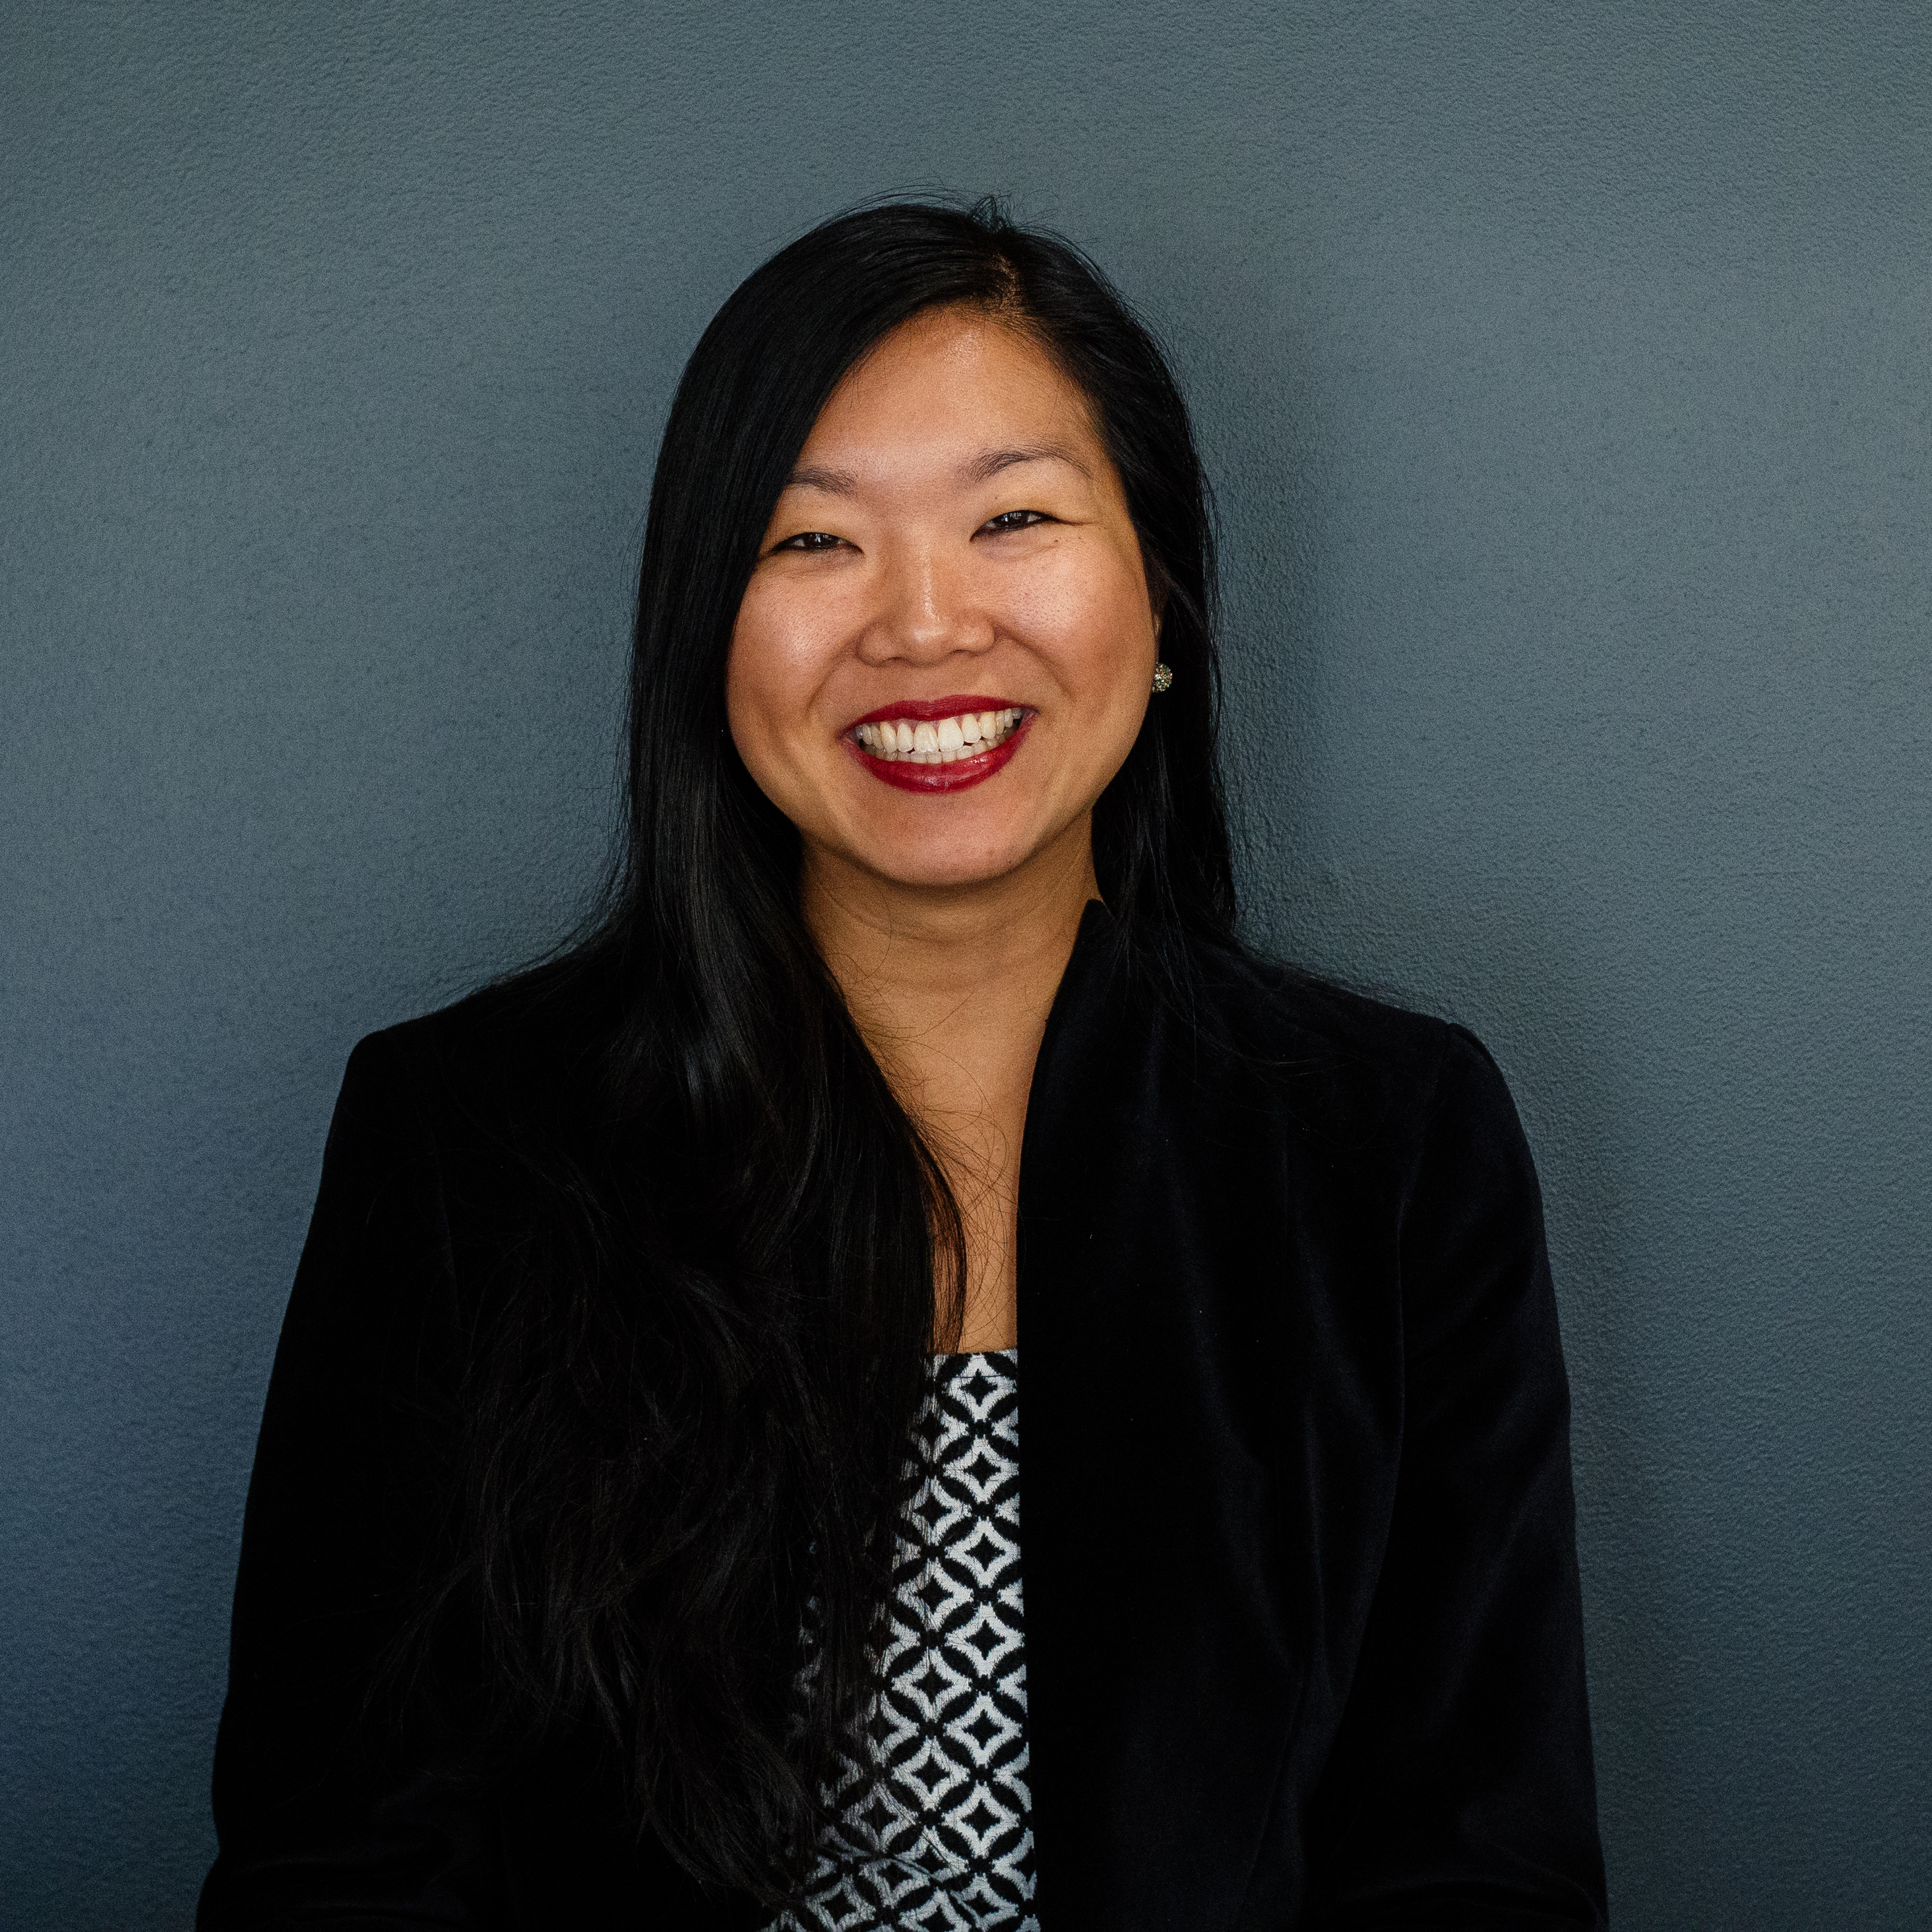 Q&A with PLS Alum Diana Mao on Lessons Learned and Her Work to End Child Labor